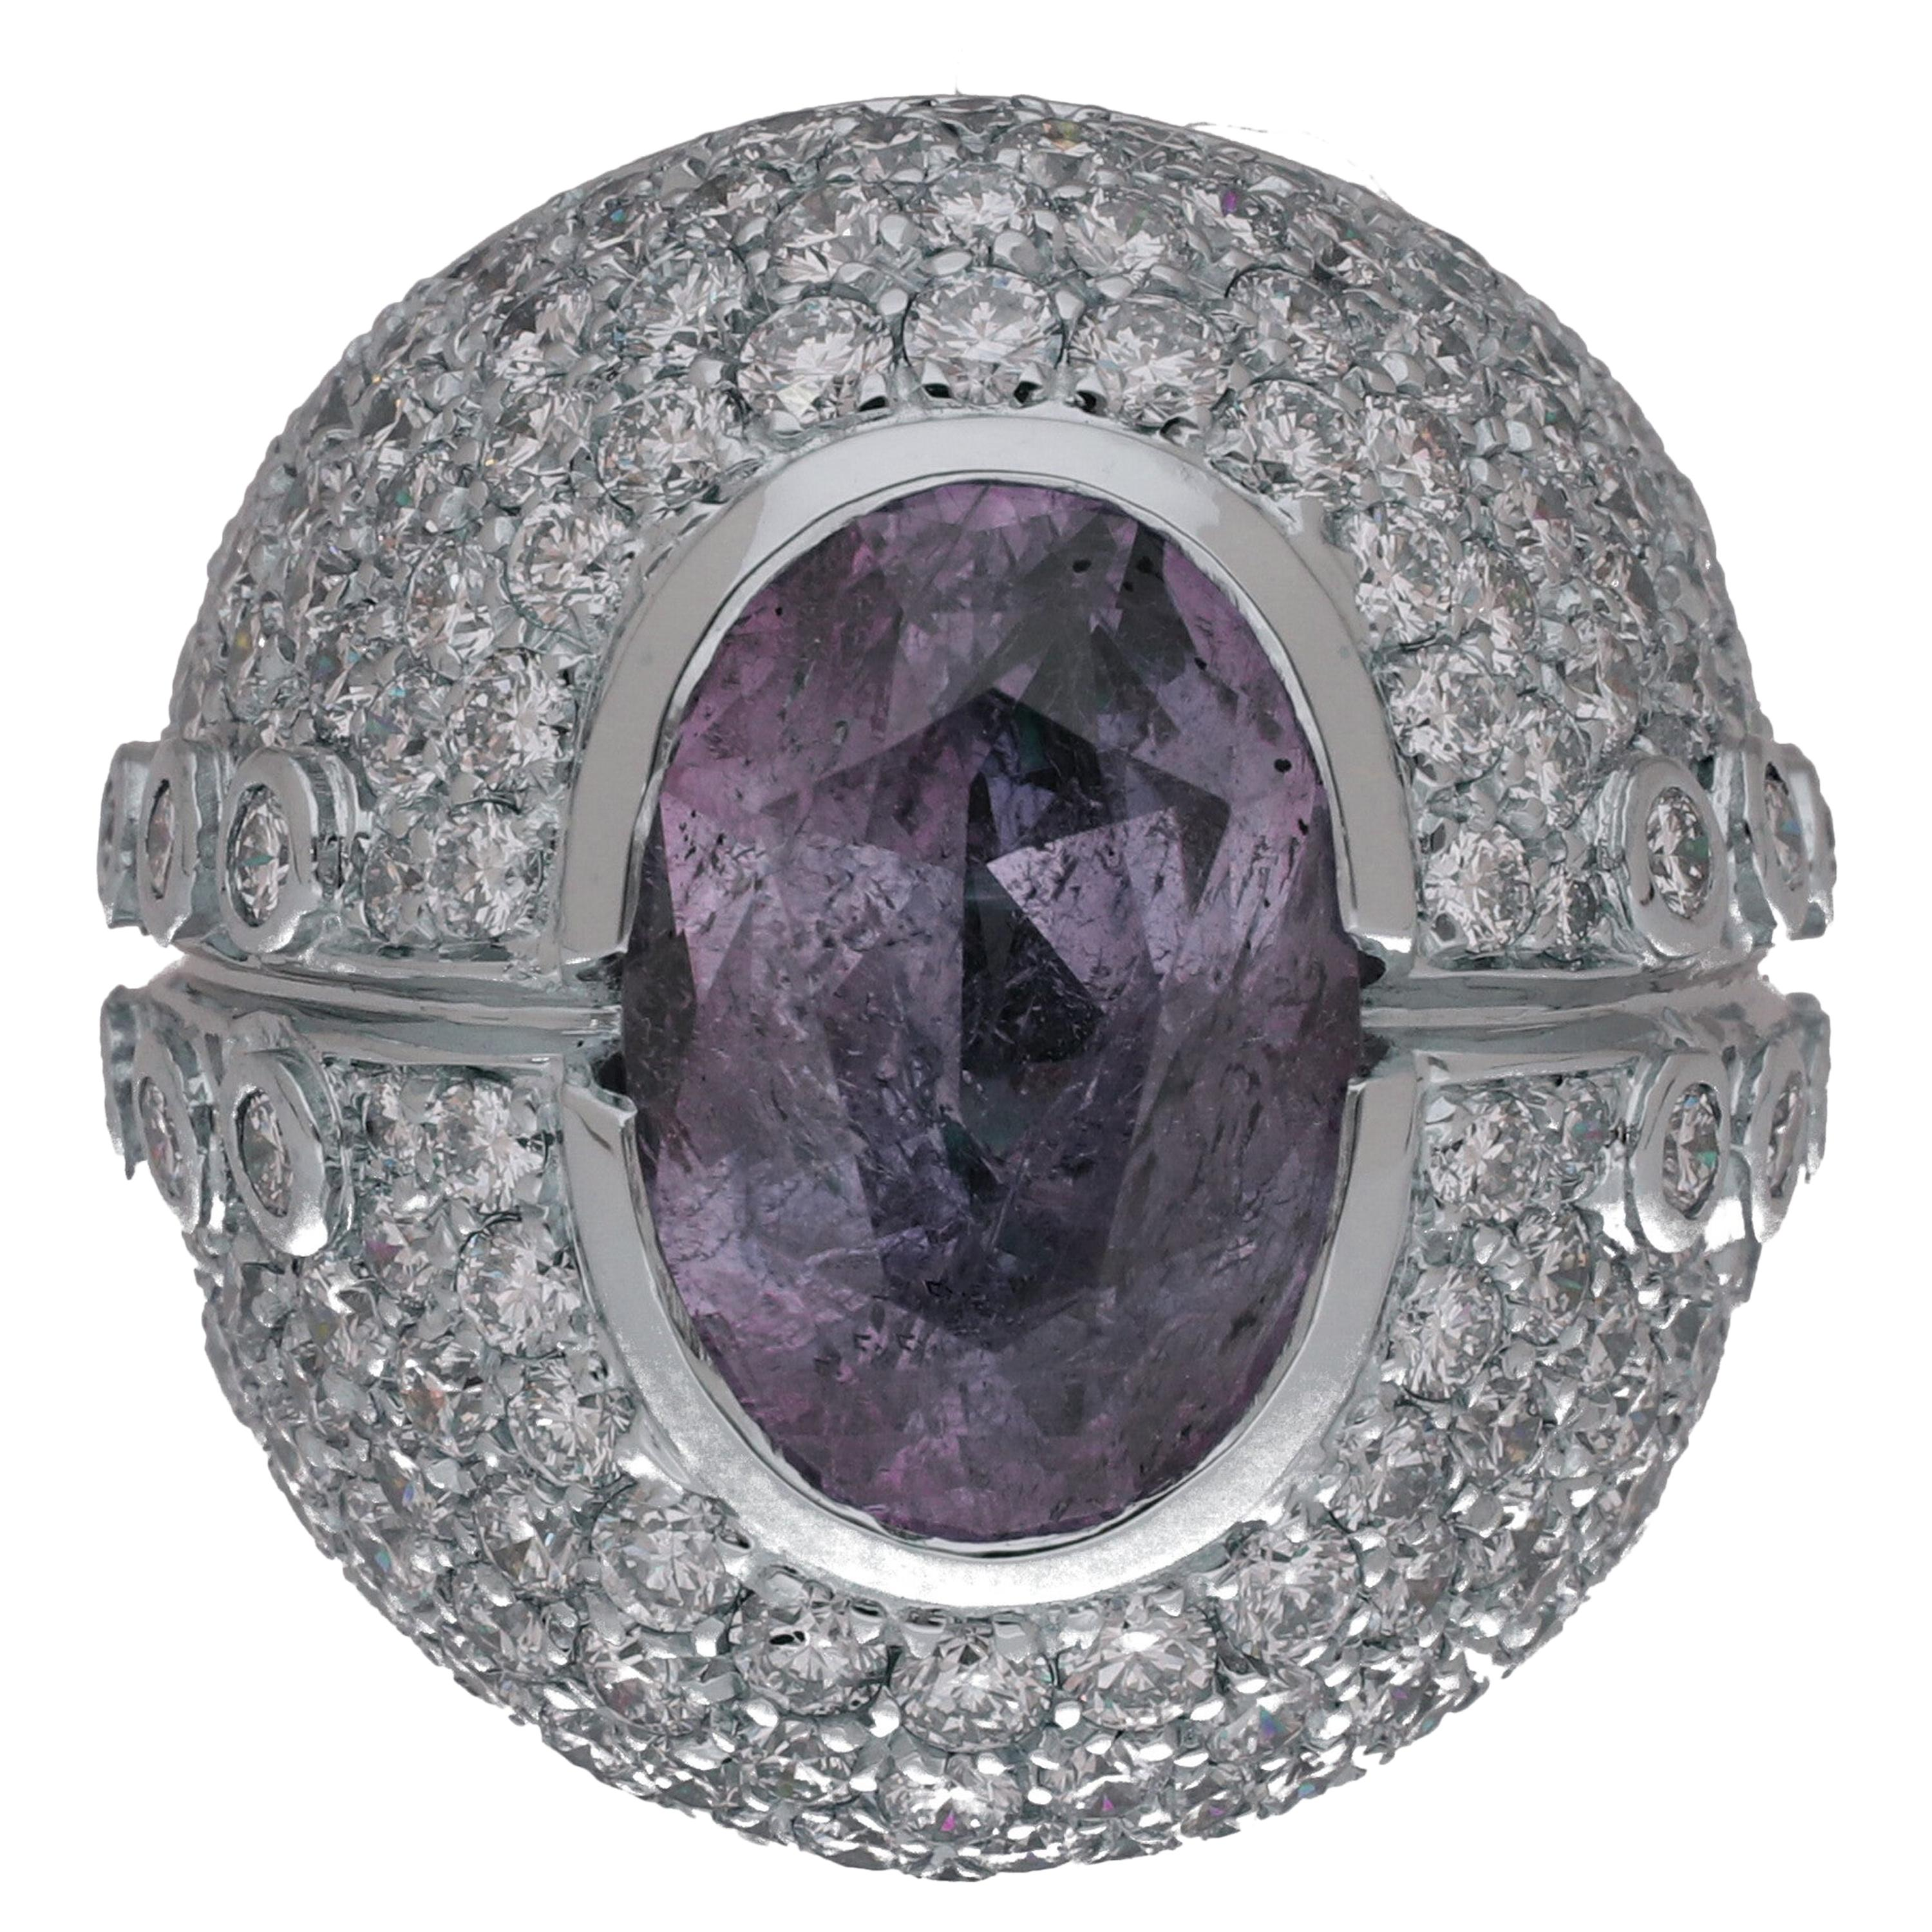 966fa3eb850f1 Antique Alexandrite Rings - 95 For Sale at 1stdibs